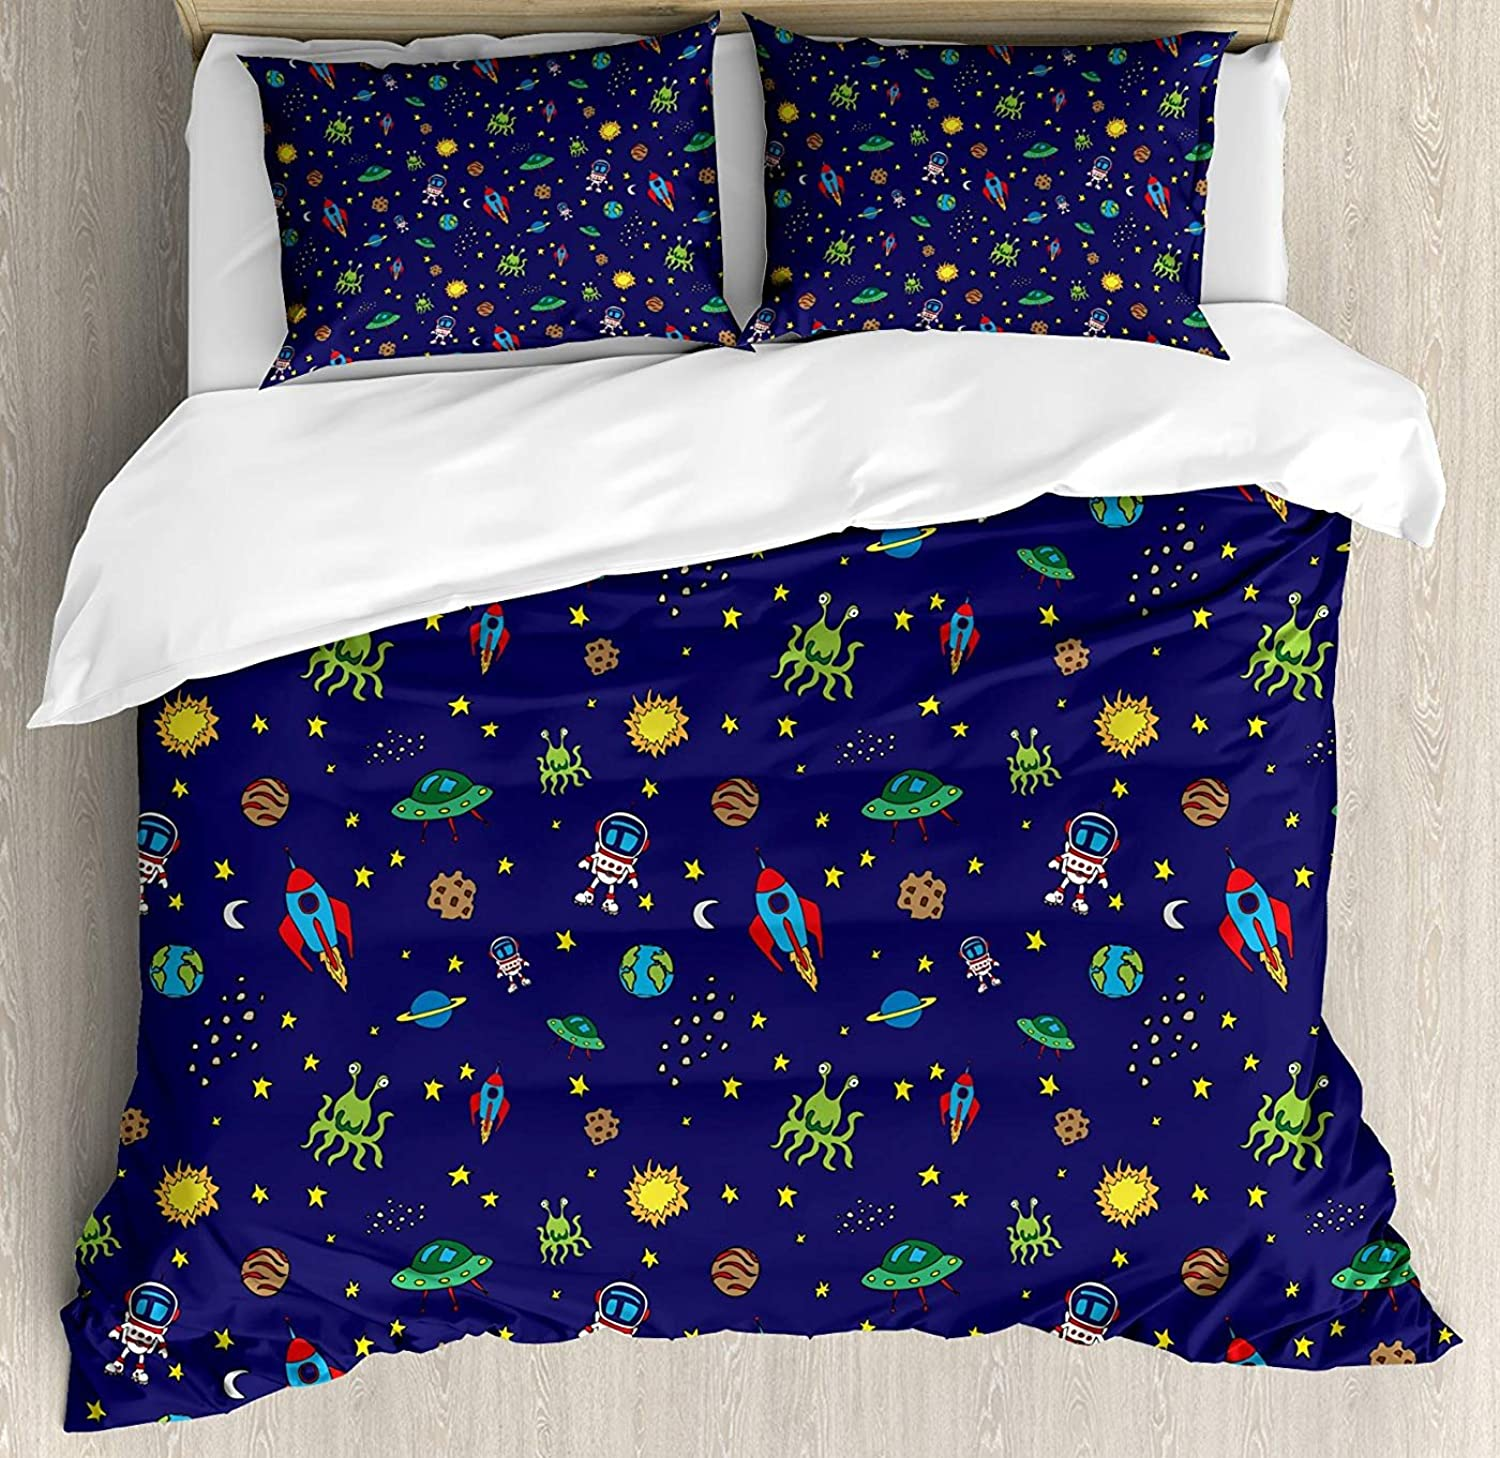 Space Duvet Cover Set Full Size, Doodle Style Cartoon Rocket Astronaut and UFO Alien Life Forms Earth Heavenly Bodies,Lightweight Microfiber Duvet Cover Sets, Multicolor